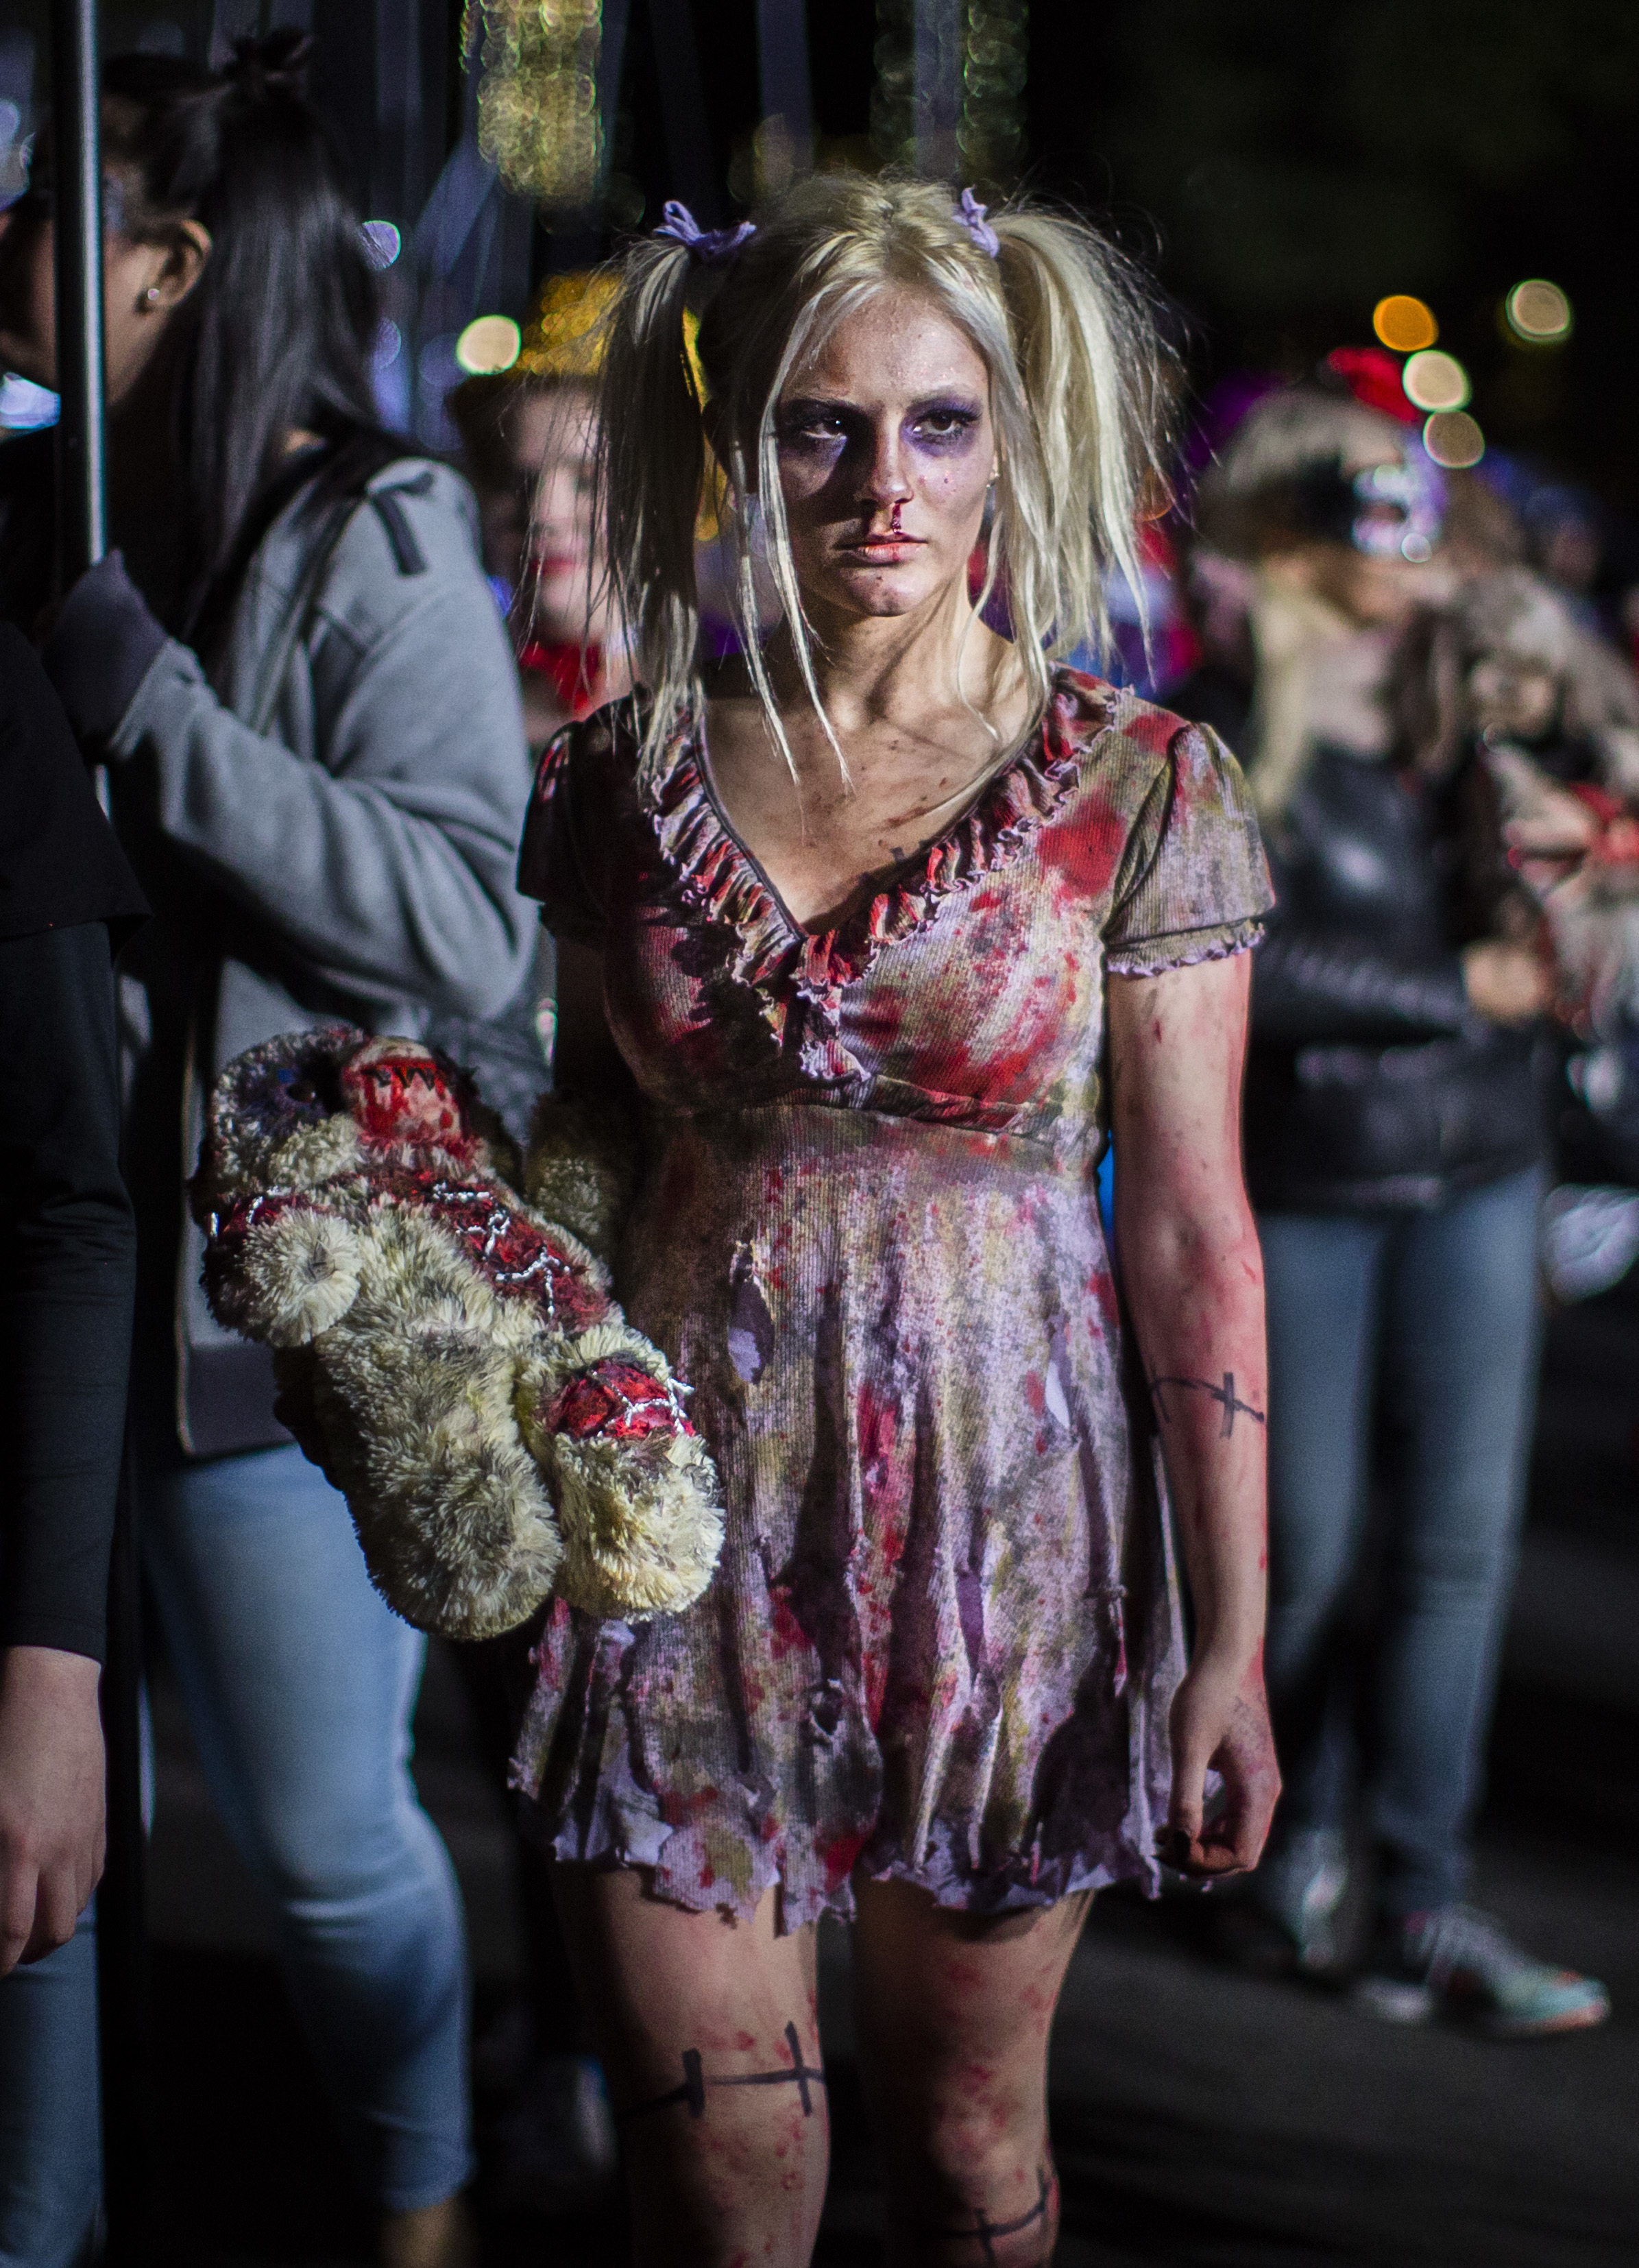 """<div class=""""meta image-caption""""><div class=""""origin-logo origin-image none""""><span>none</span></div><span class=""""caption-text"""">A reveler marches during the Greenwich Village Halloween Parade in New York, Monday, Oct. 31, 2016. (AP Photo/Andres Kudacki)</span></div>"""